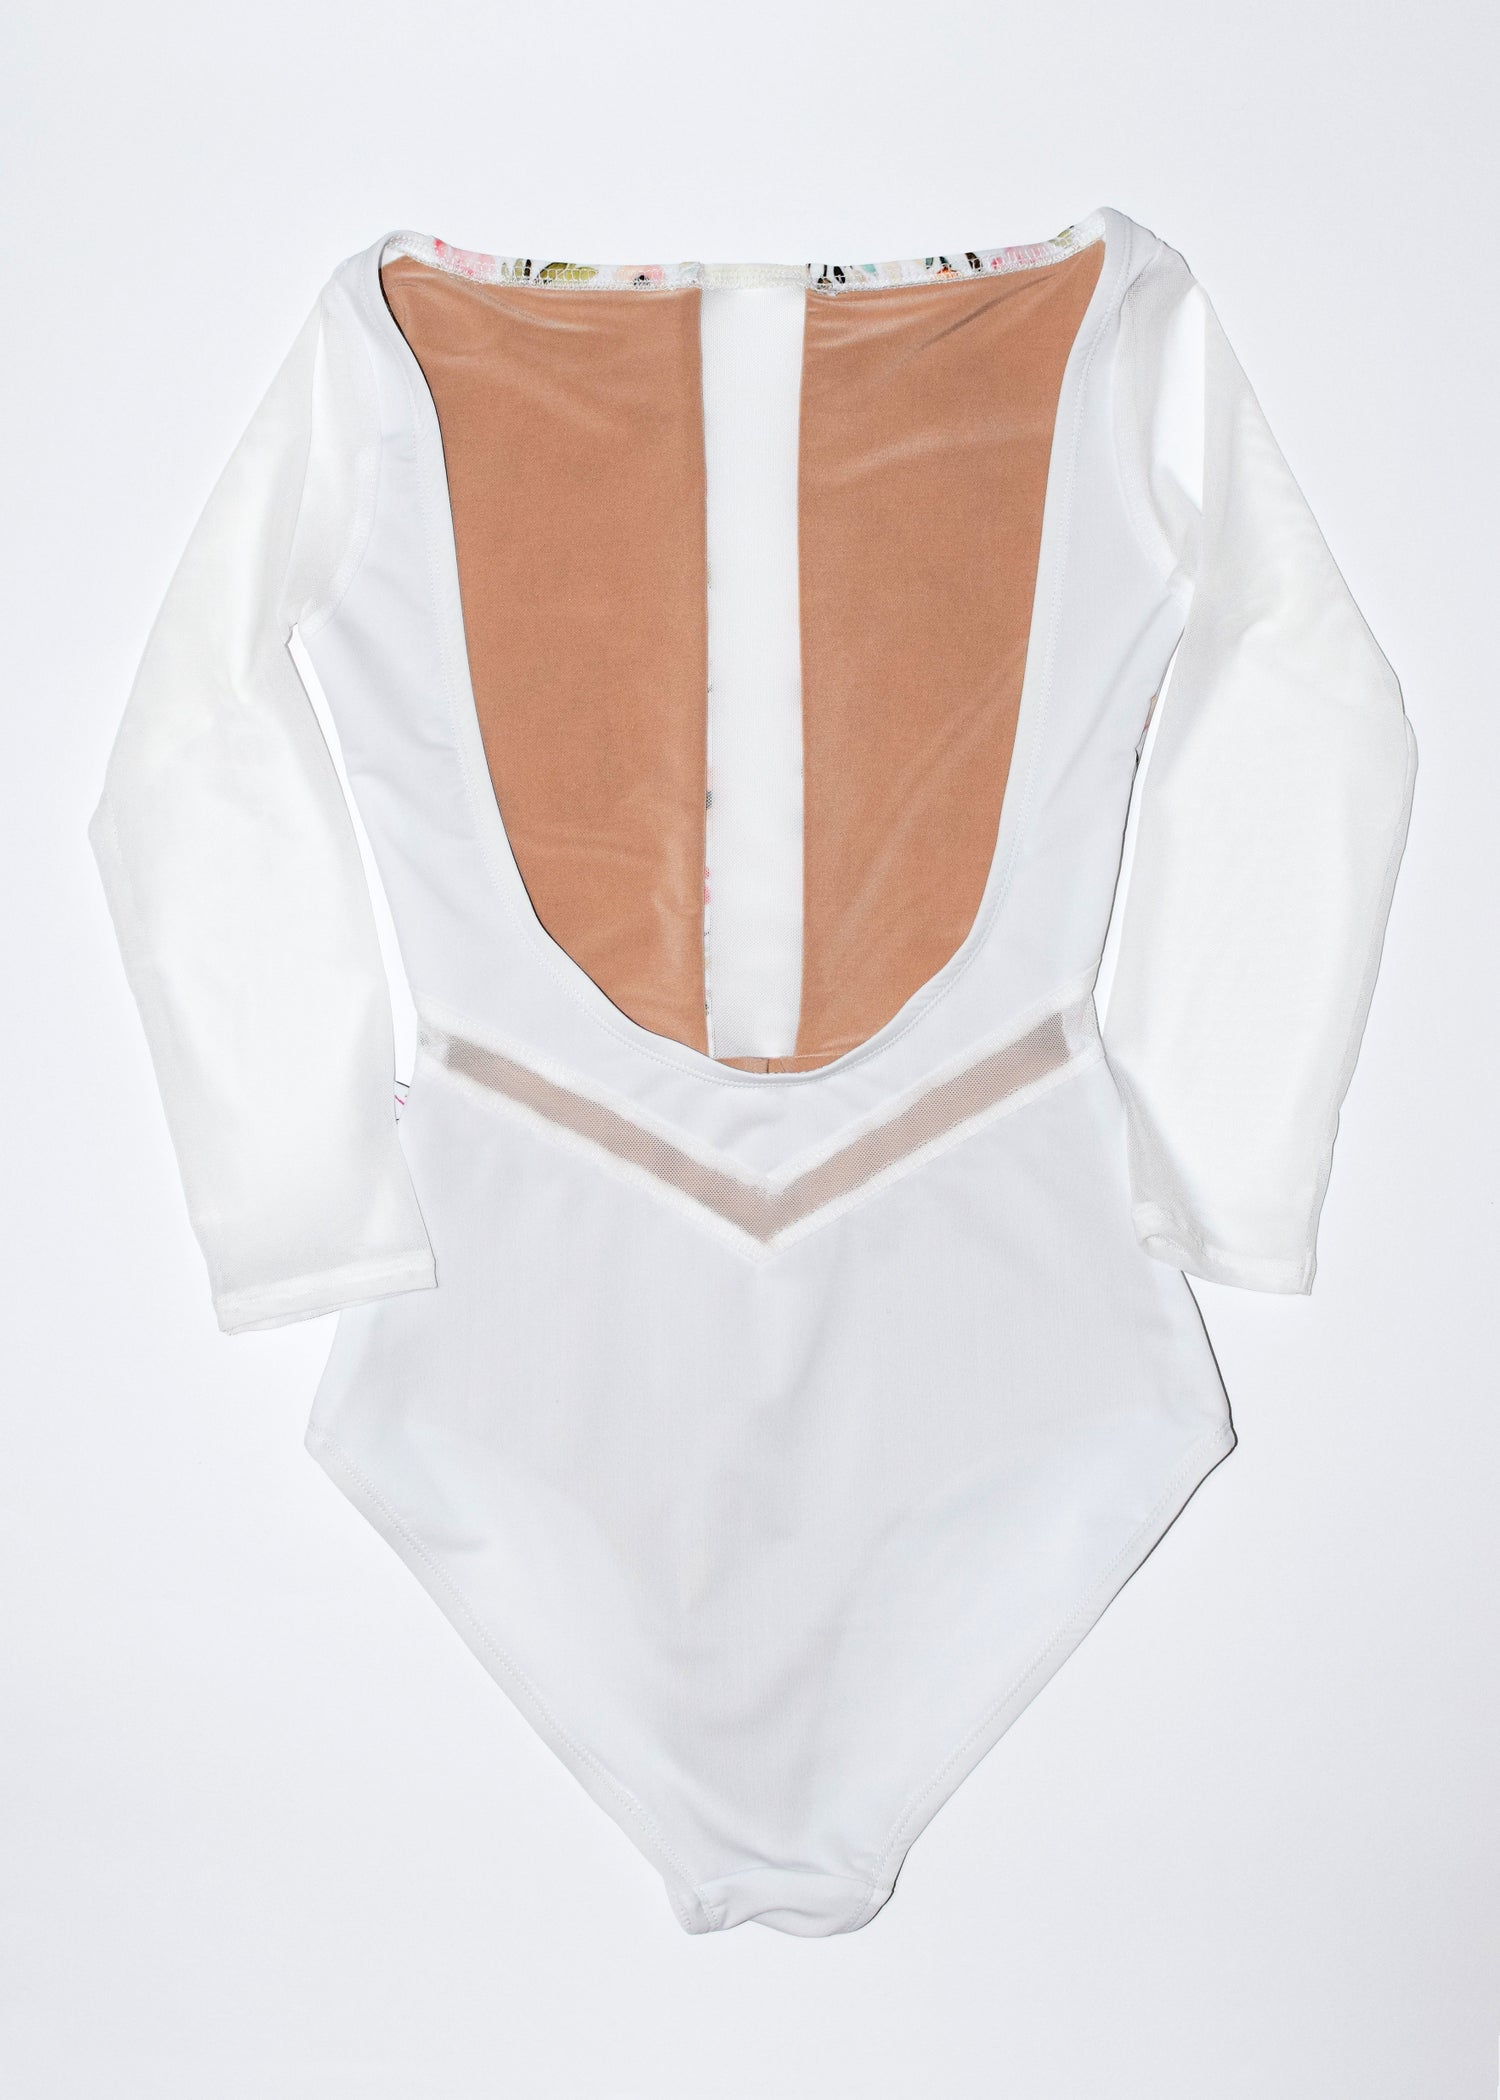 Image of IN THE MIDDLE with long sleeve - Patter Fabric